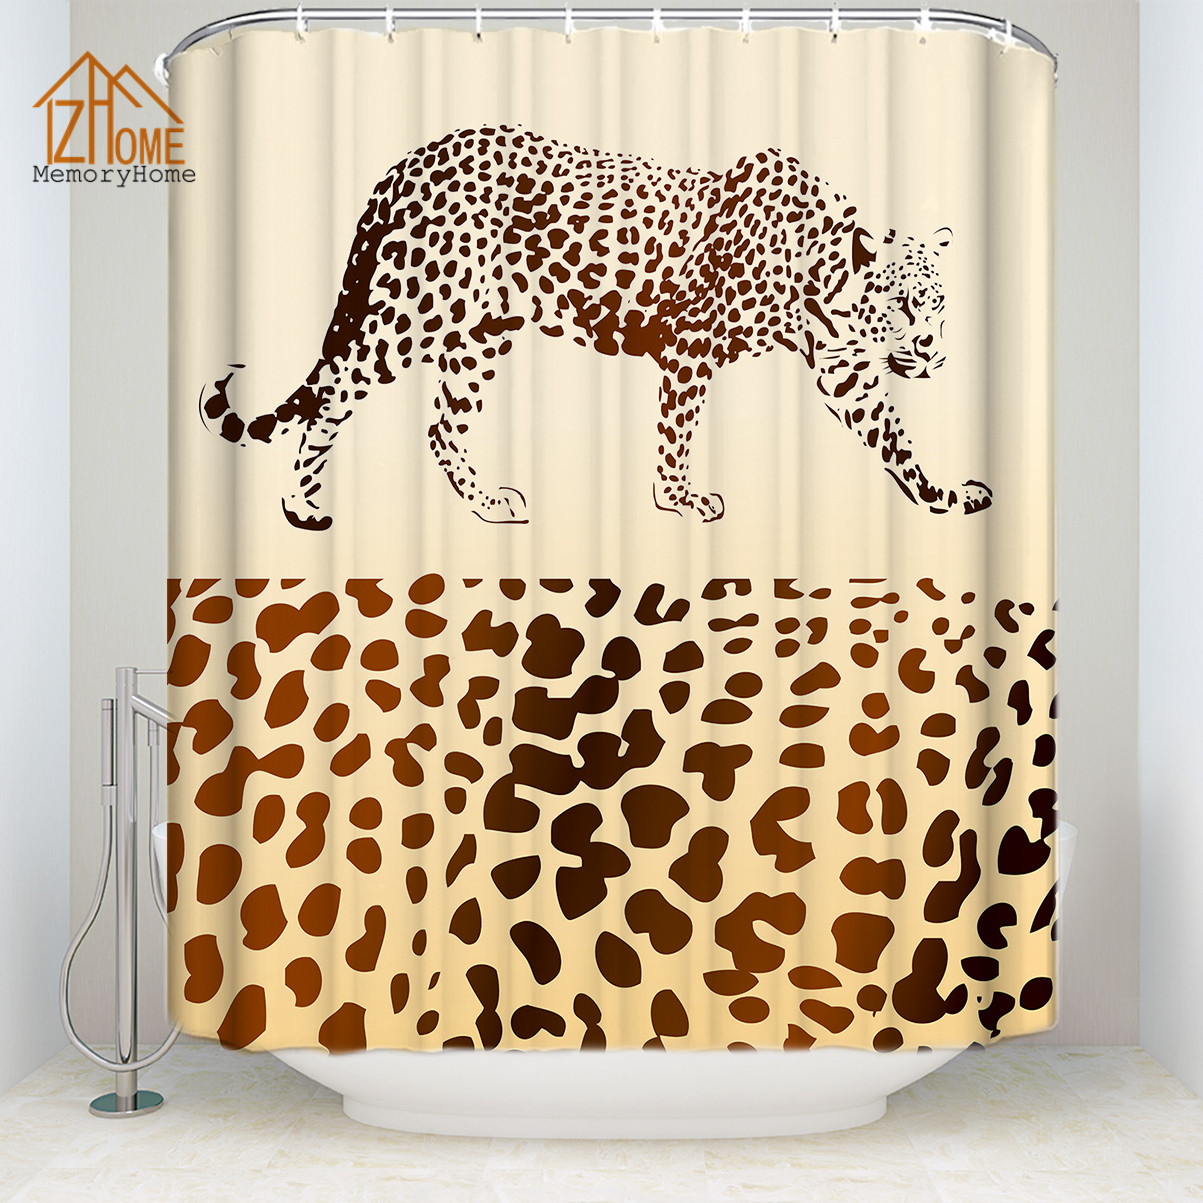 Memory Home Wild Animal Print Leopard Shower Curtain Multi Size Waterproof Polyester Fabric Bathroom Decor Free Shipping